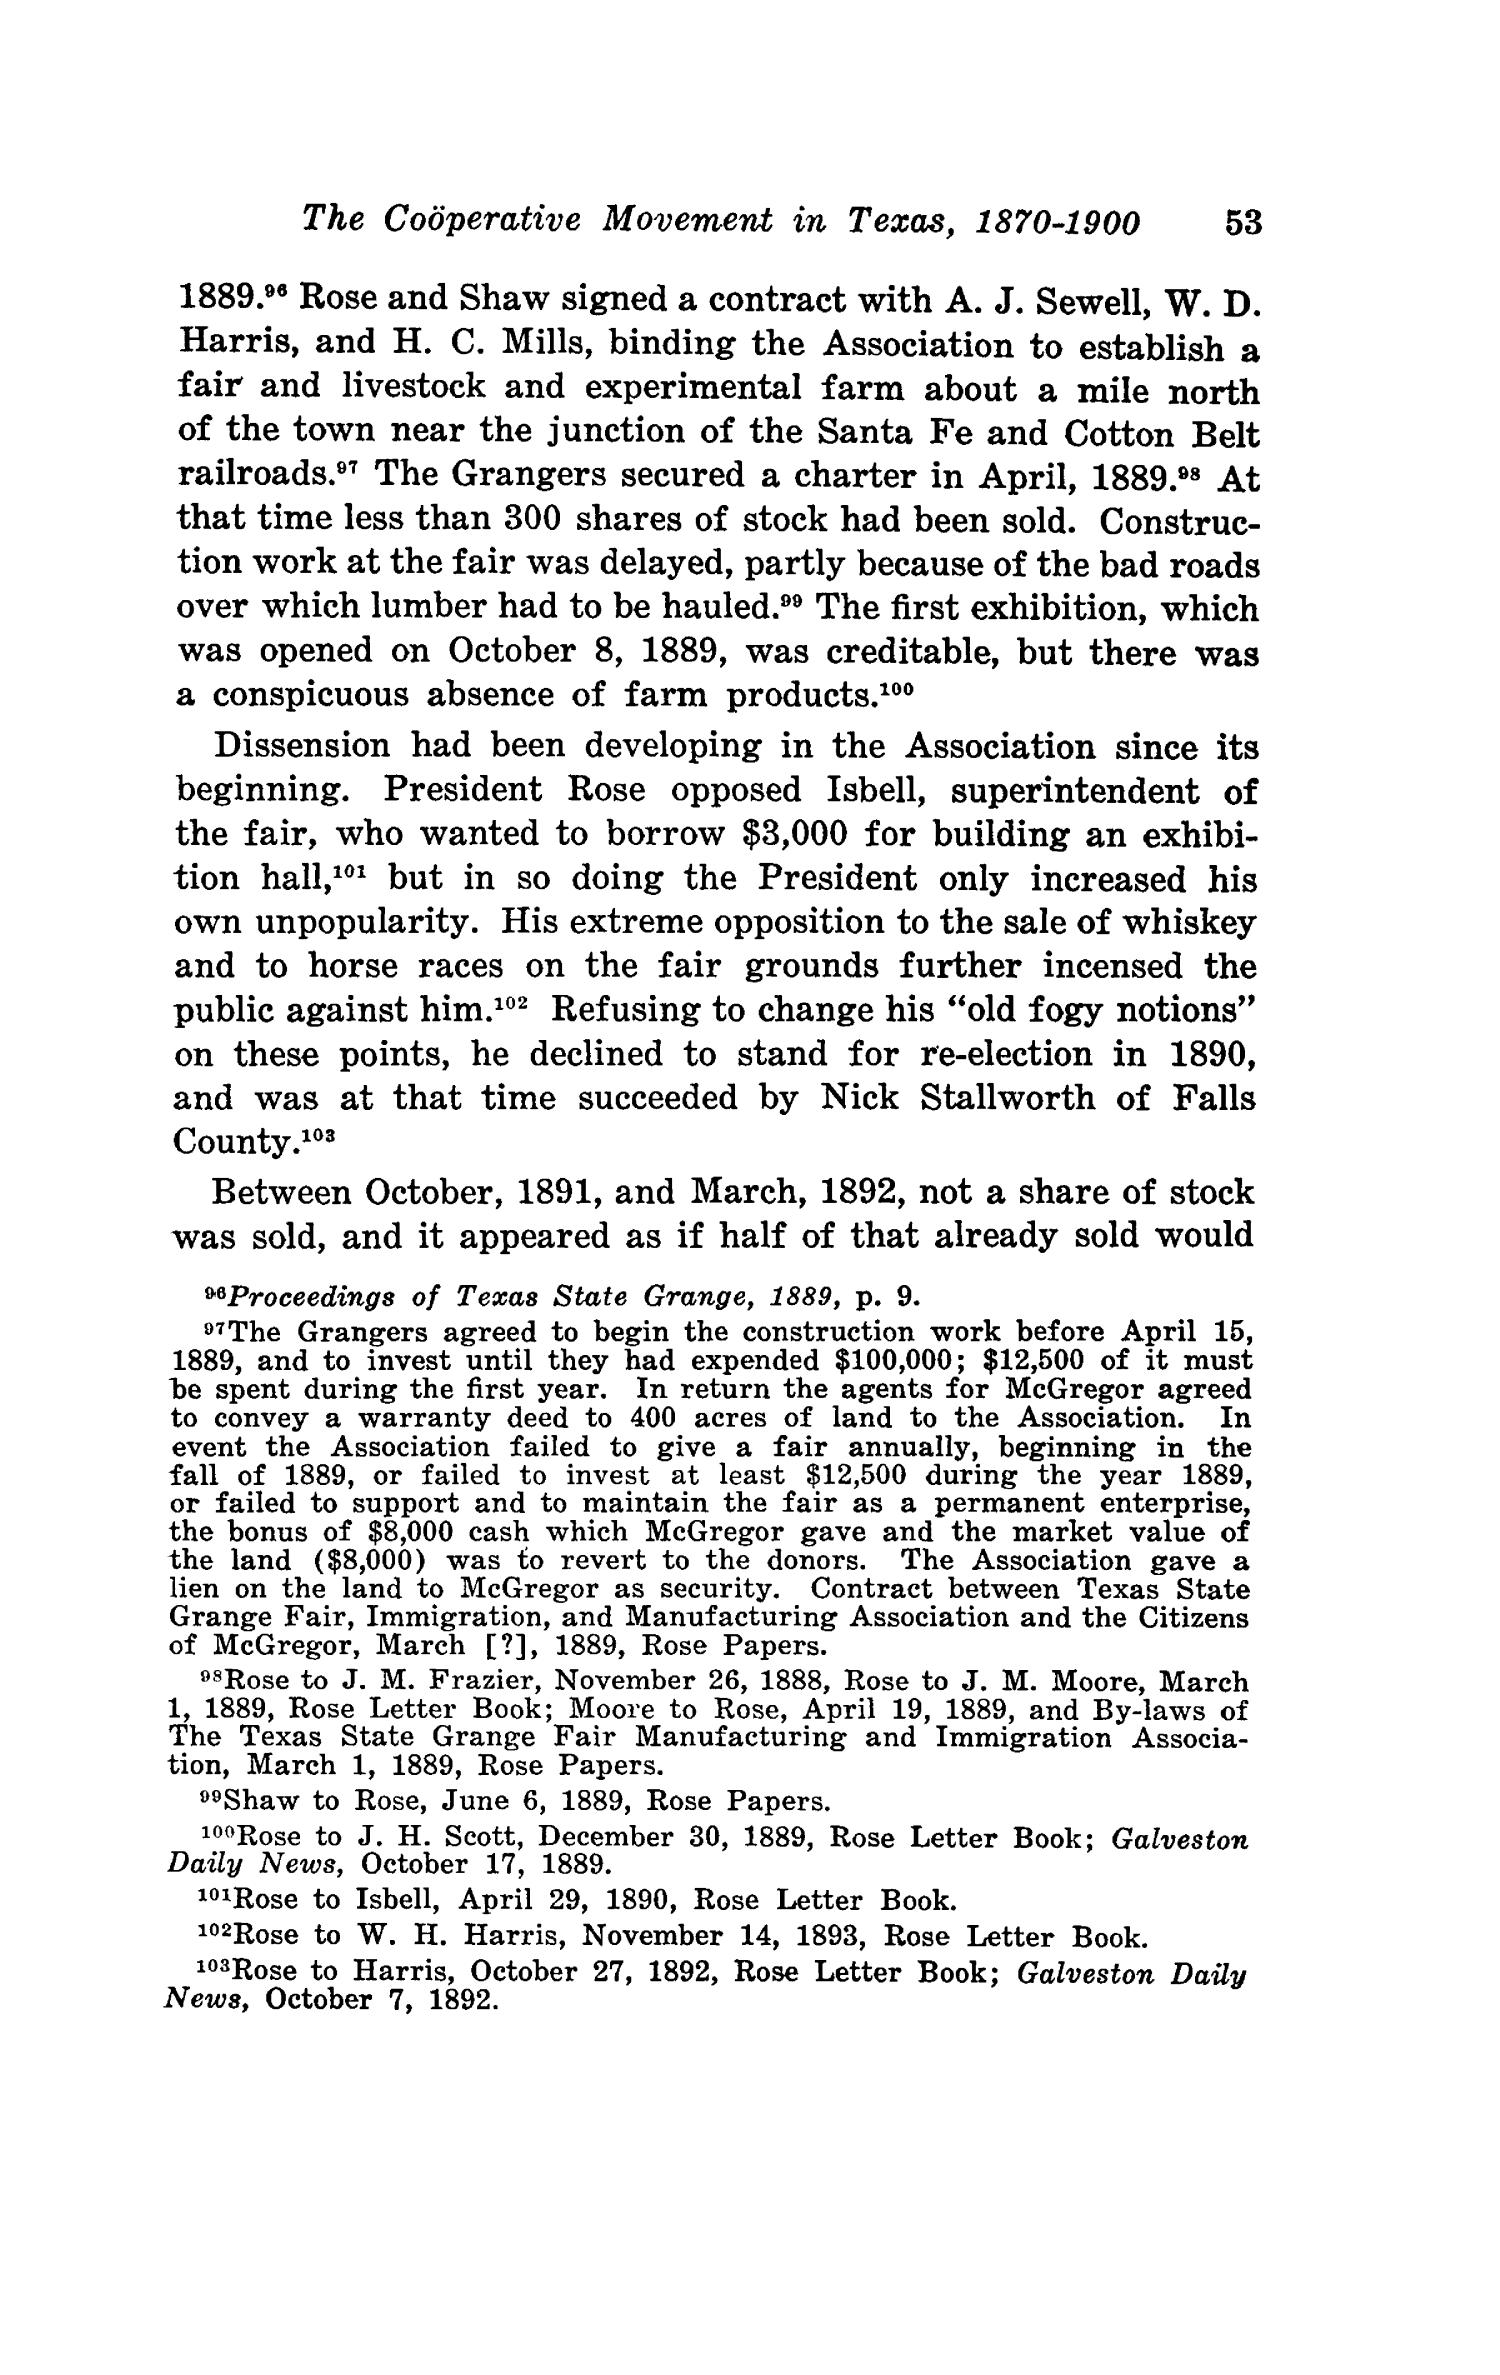 The Southwestern Historical Quarterly, Volume 44, July 1940 - April, 1941                                                                                                      53